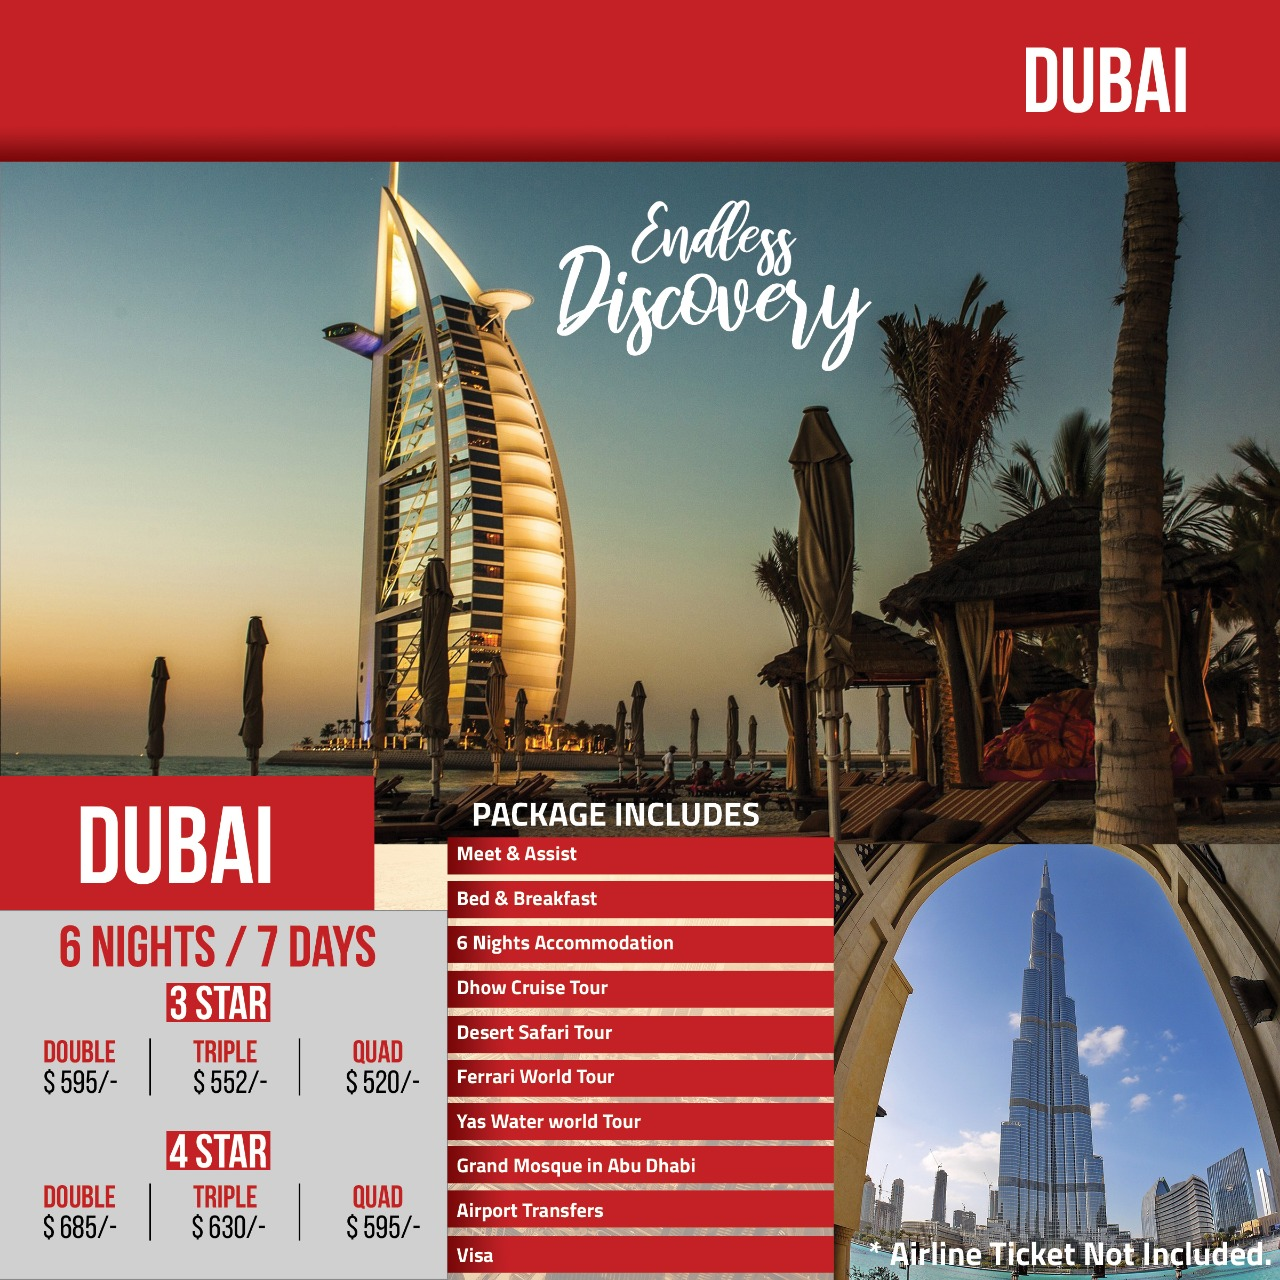 dubai-endless-discovery-tour